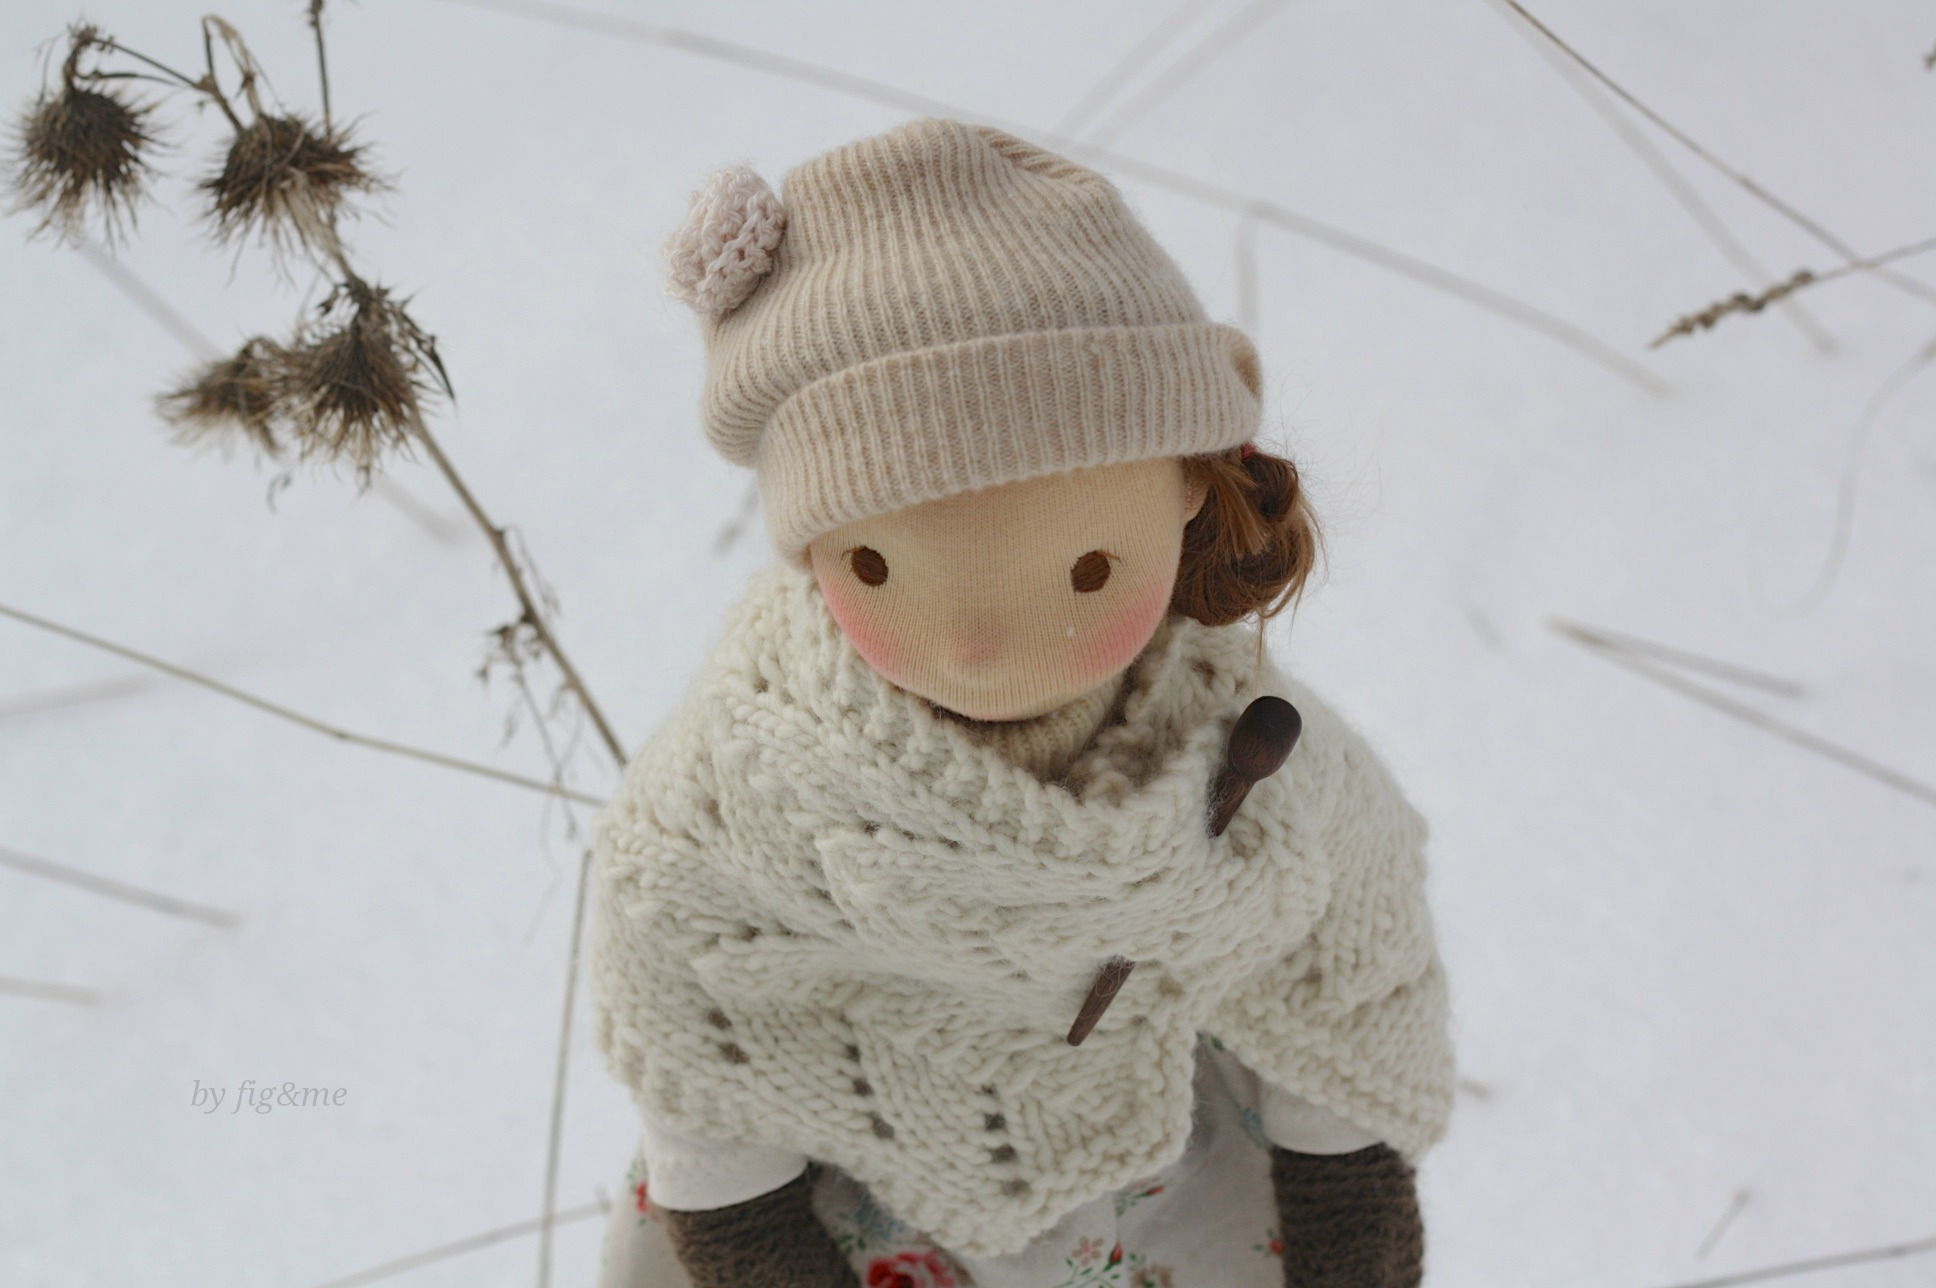 A little snowflake on your cheek Little Winny, by Fig and Me.